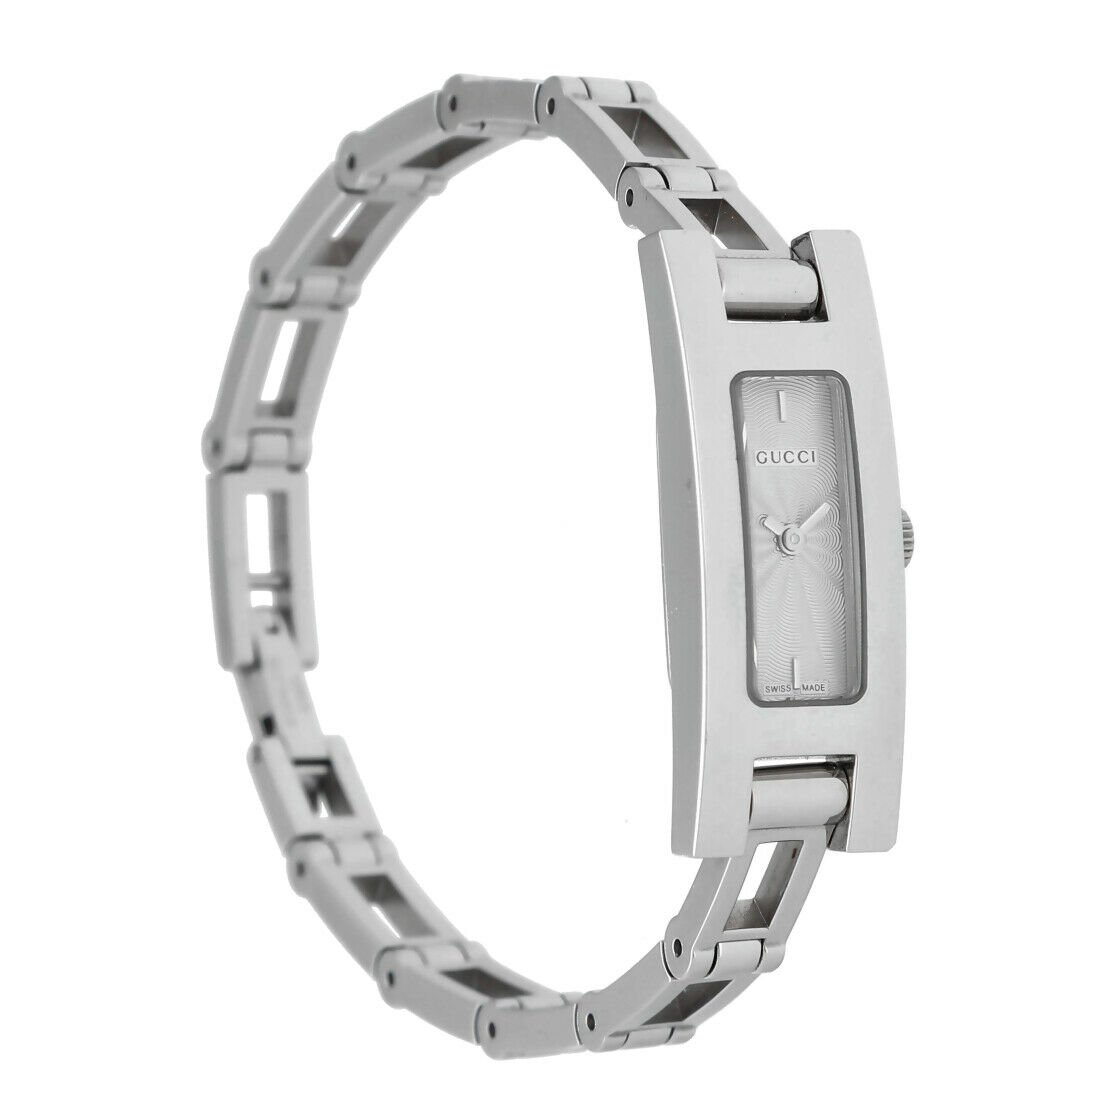 Gucci 3900L Stainless Steel Silver Dial Rectangle Swiss Quartz Womens Watch 133538249984 3